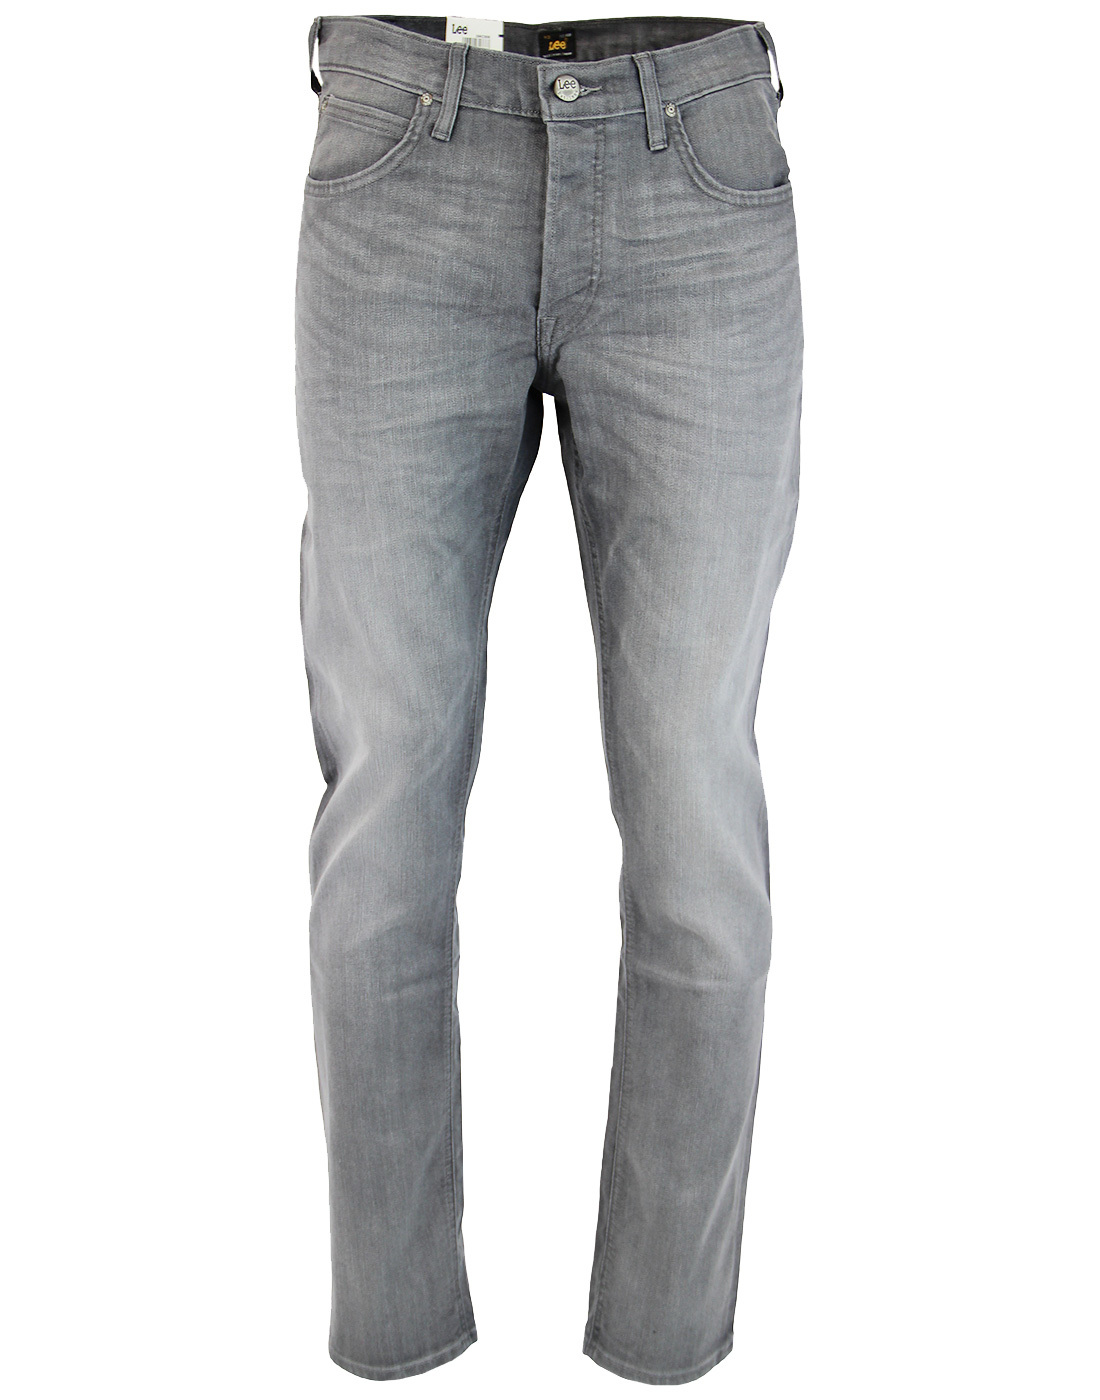 Daren LEE Retro Slim Leg Storm Grey Denim Jeans